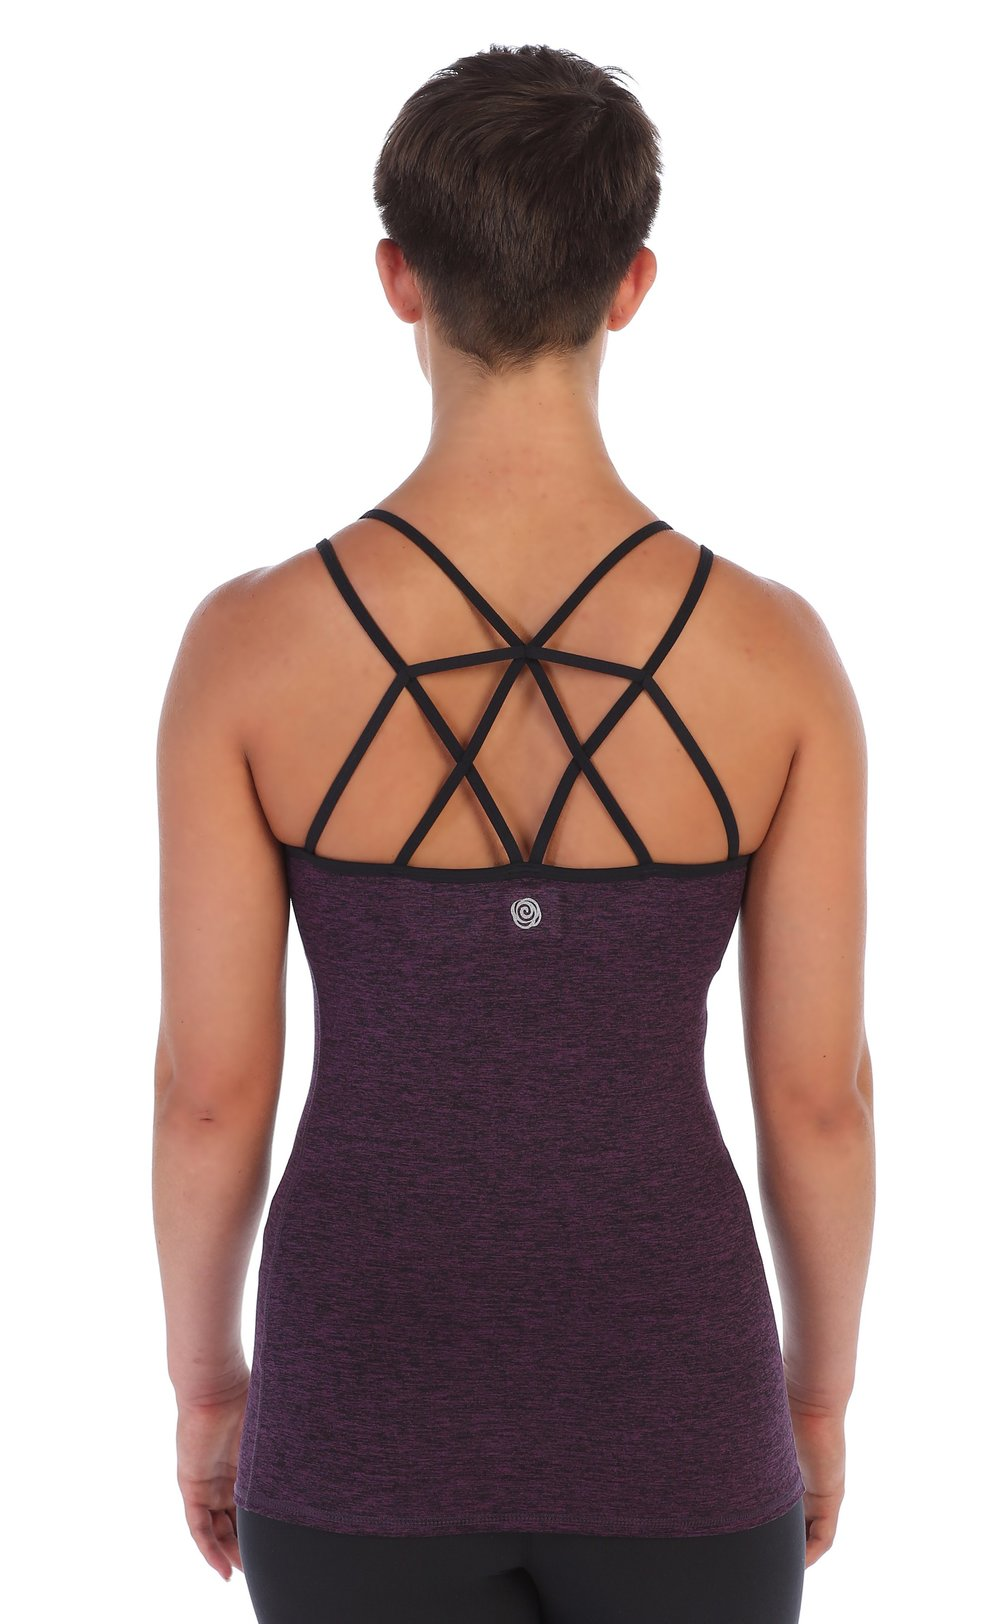 LATTICE BACK CAMI TOP BUILT IN SPORTS BRA